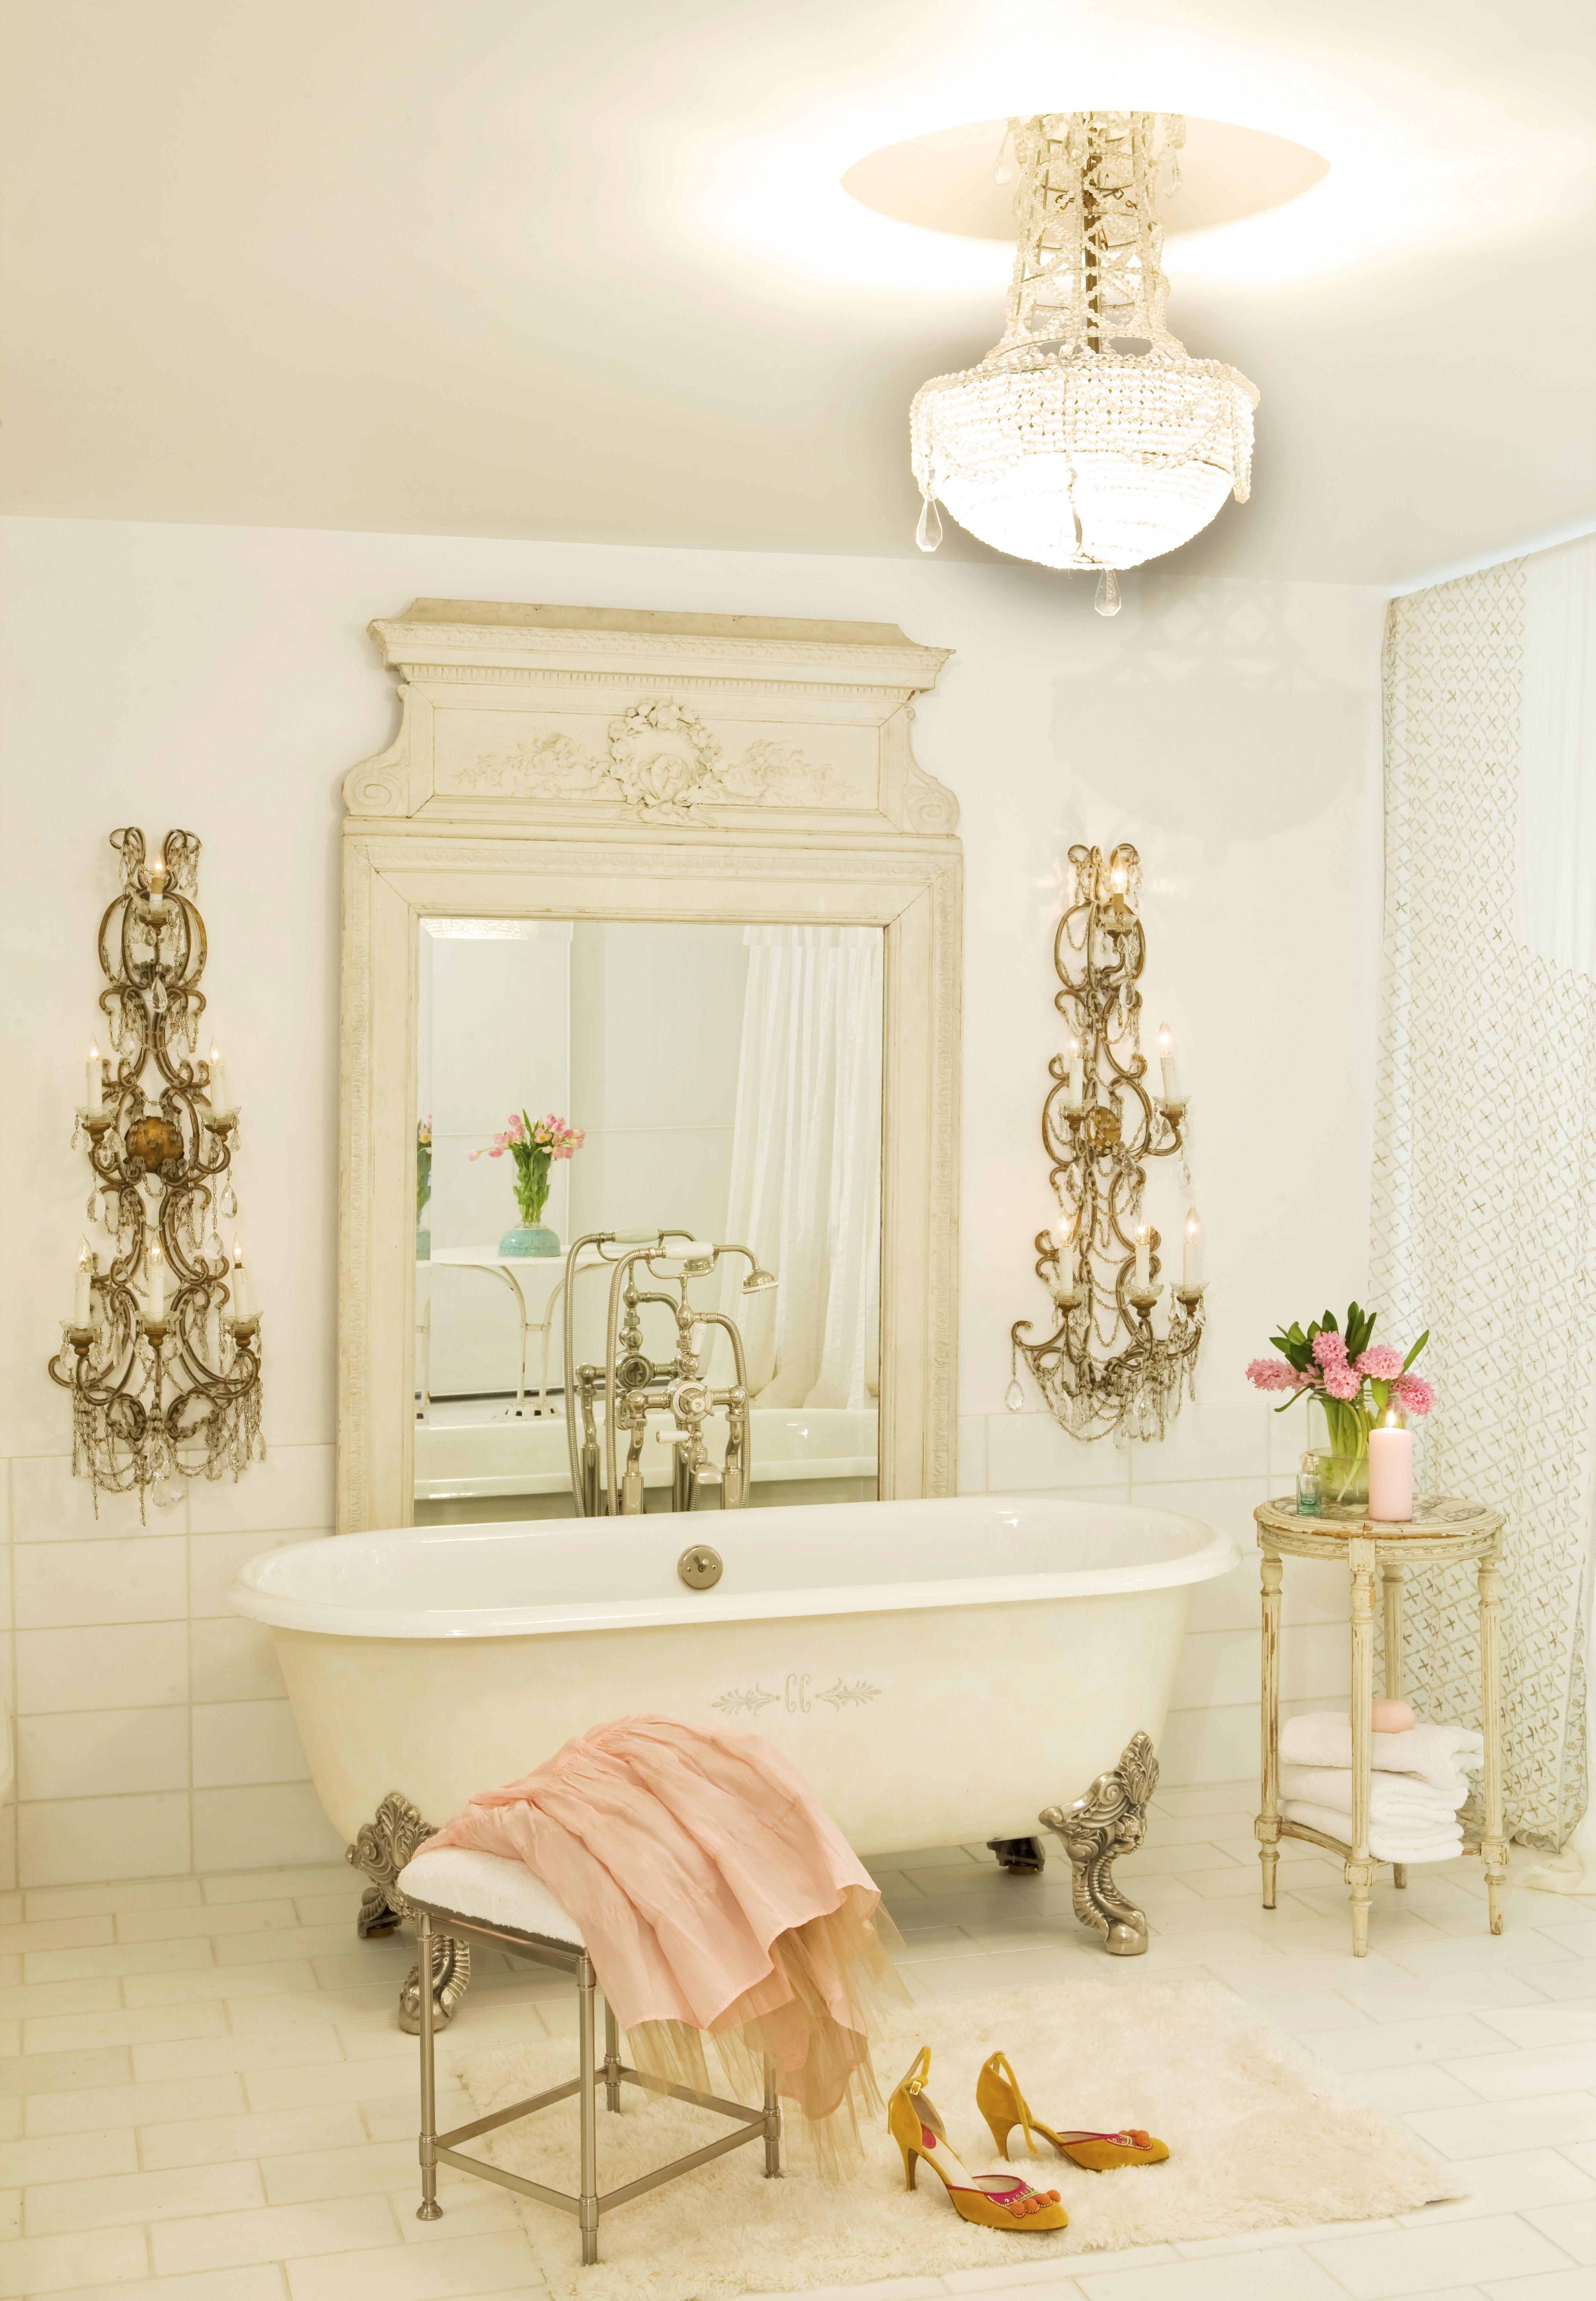 Simply Beautiful Bathrooms: Casa Mon Amour Bathroom By Chantal Cloutier Vintage And